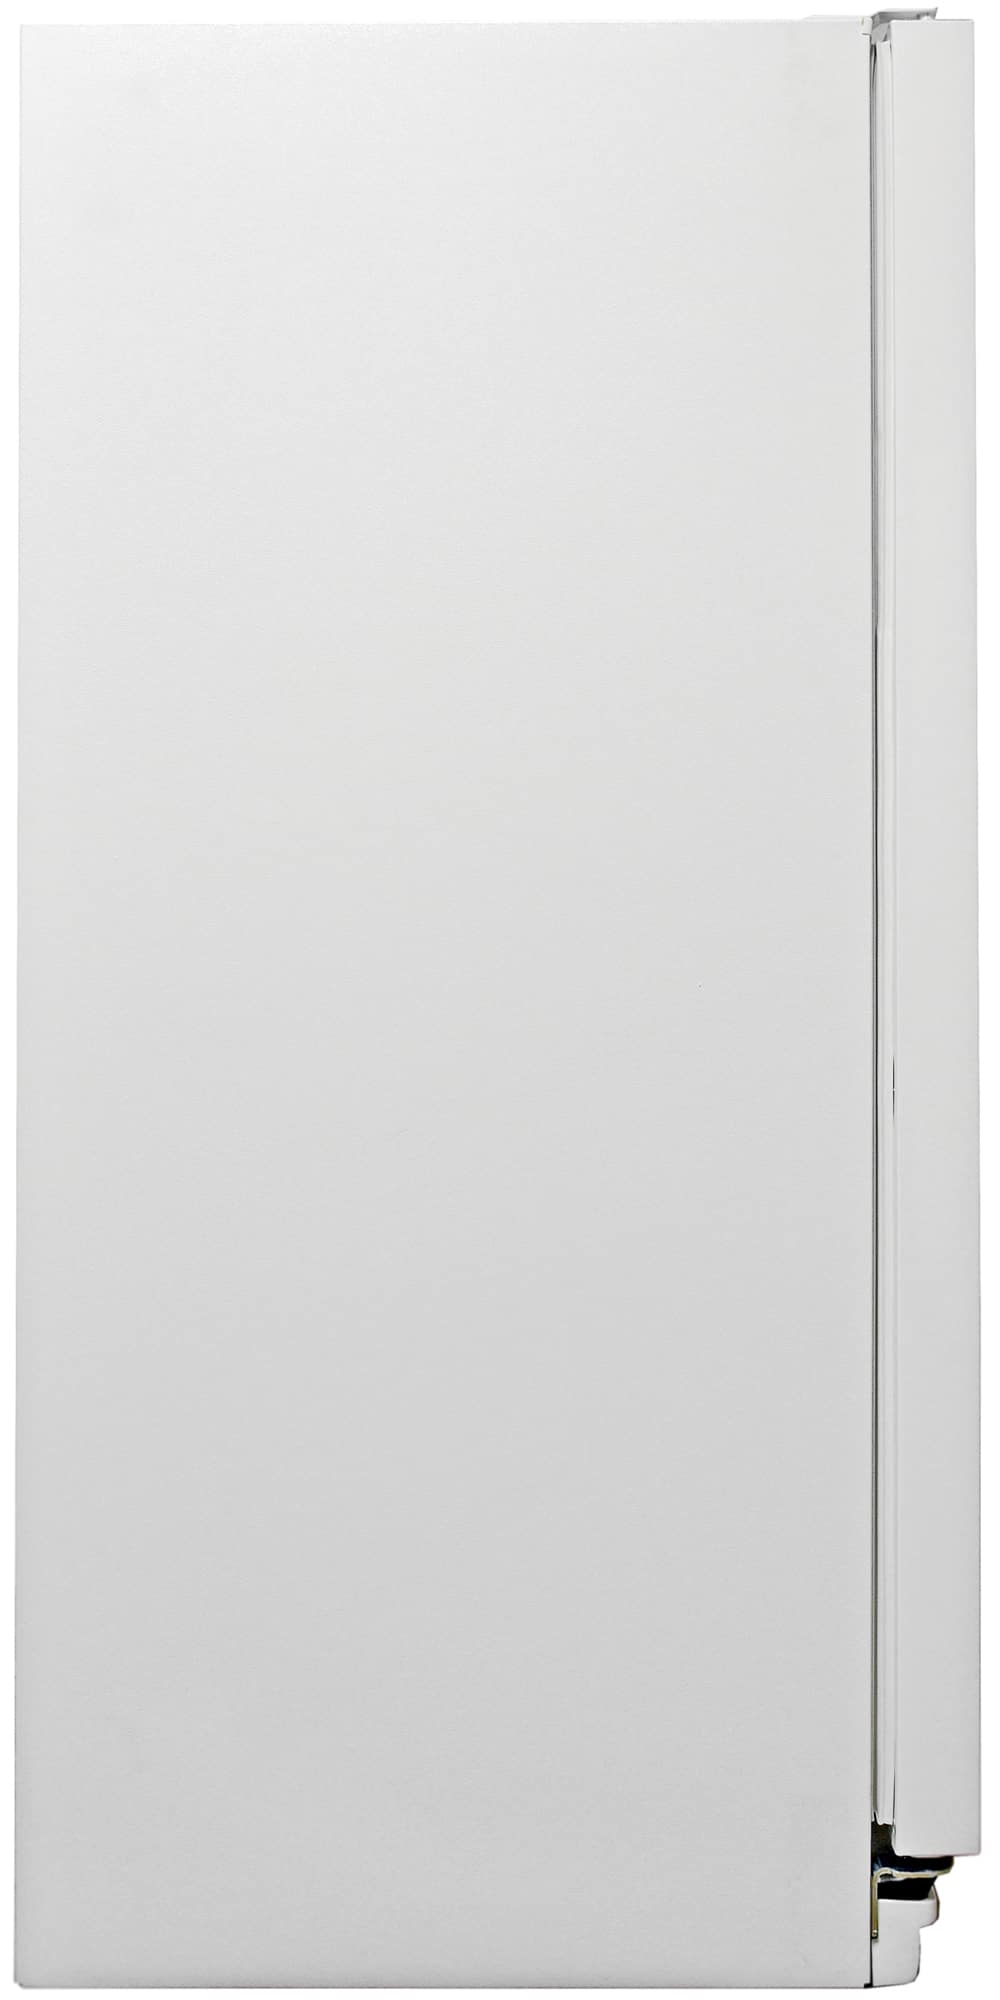 The Kenmore 51122's white matte sides complement its glossy front.